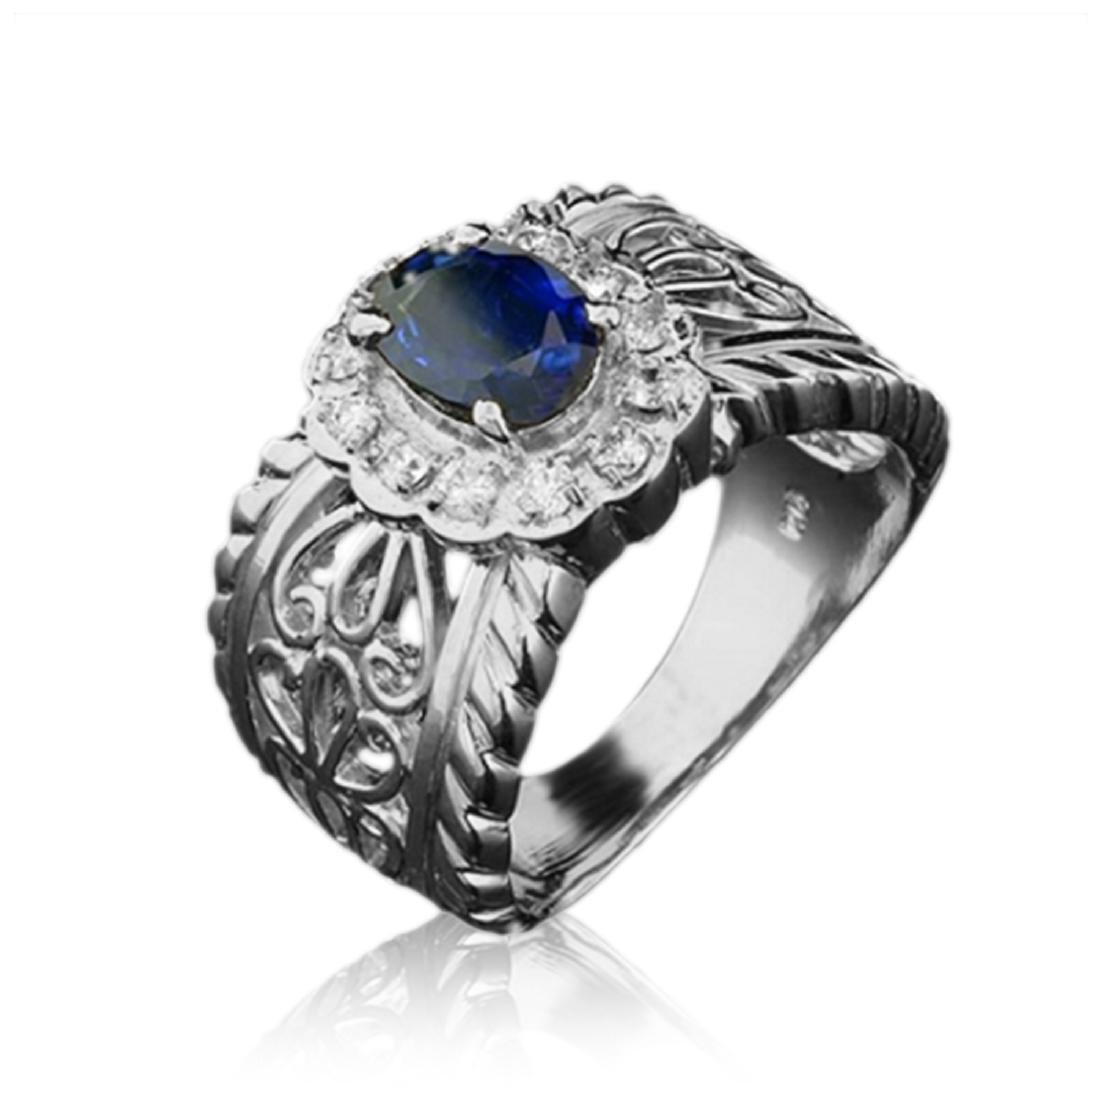 1.20 Carat Natural Sapphire 18K Solid White Gold